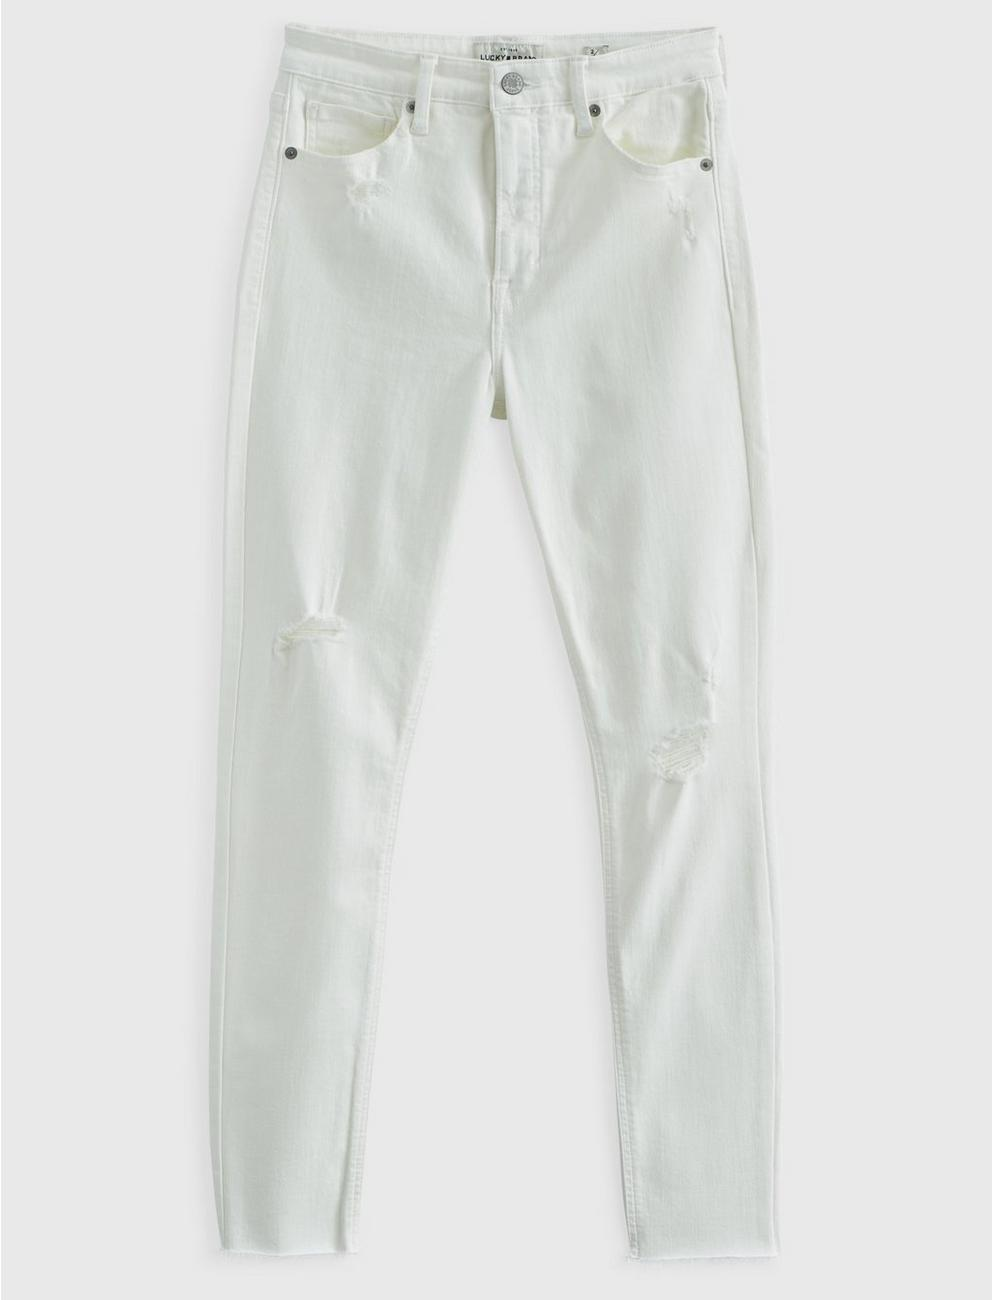 HIGH RISE BRIDGETTE SKINNY JEAN, PREMIUM WHT DESTRUCT